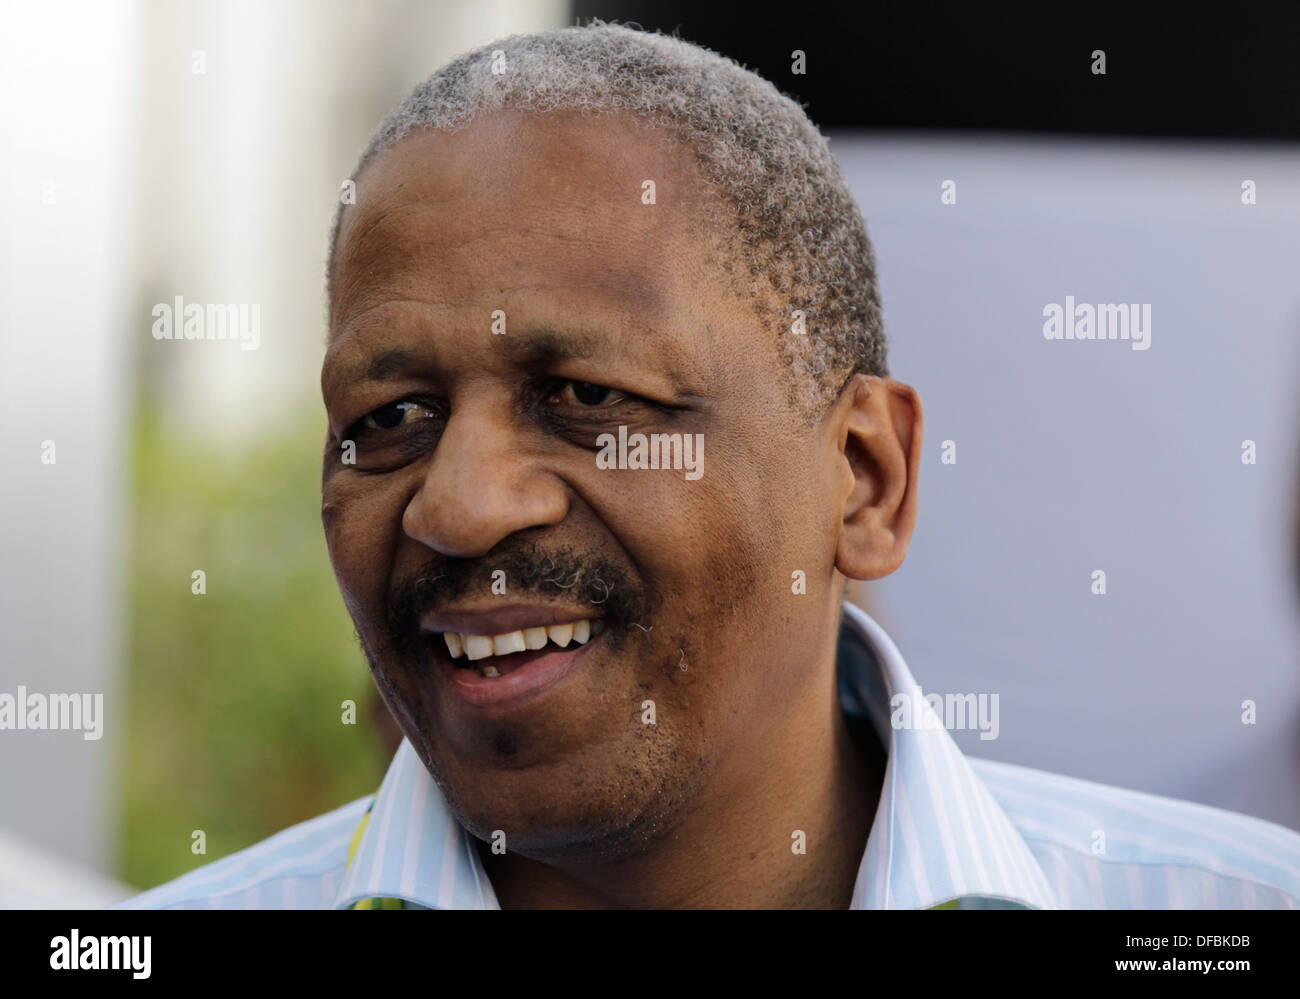 Mathews Phosa at the African National Congress (ANC) National General Council in Durban, 21 September 2010. © Rogan Ward 2010 - Stock Image